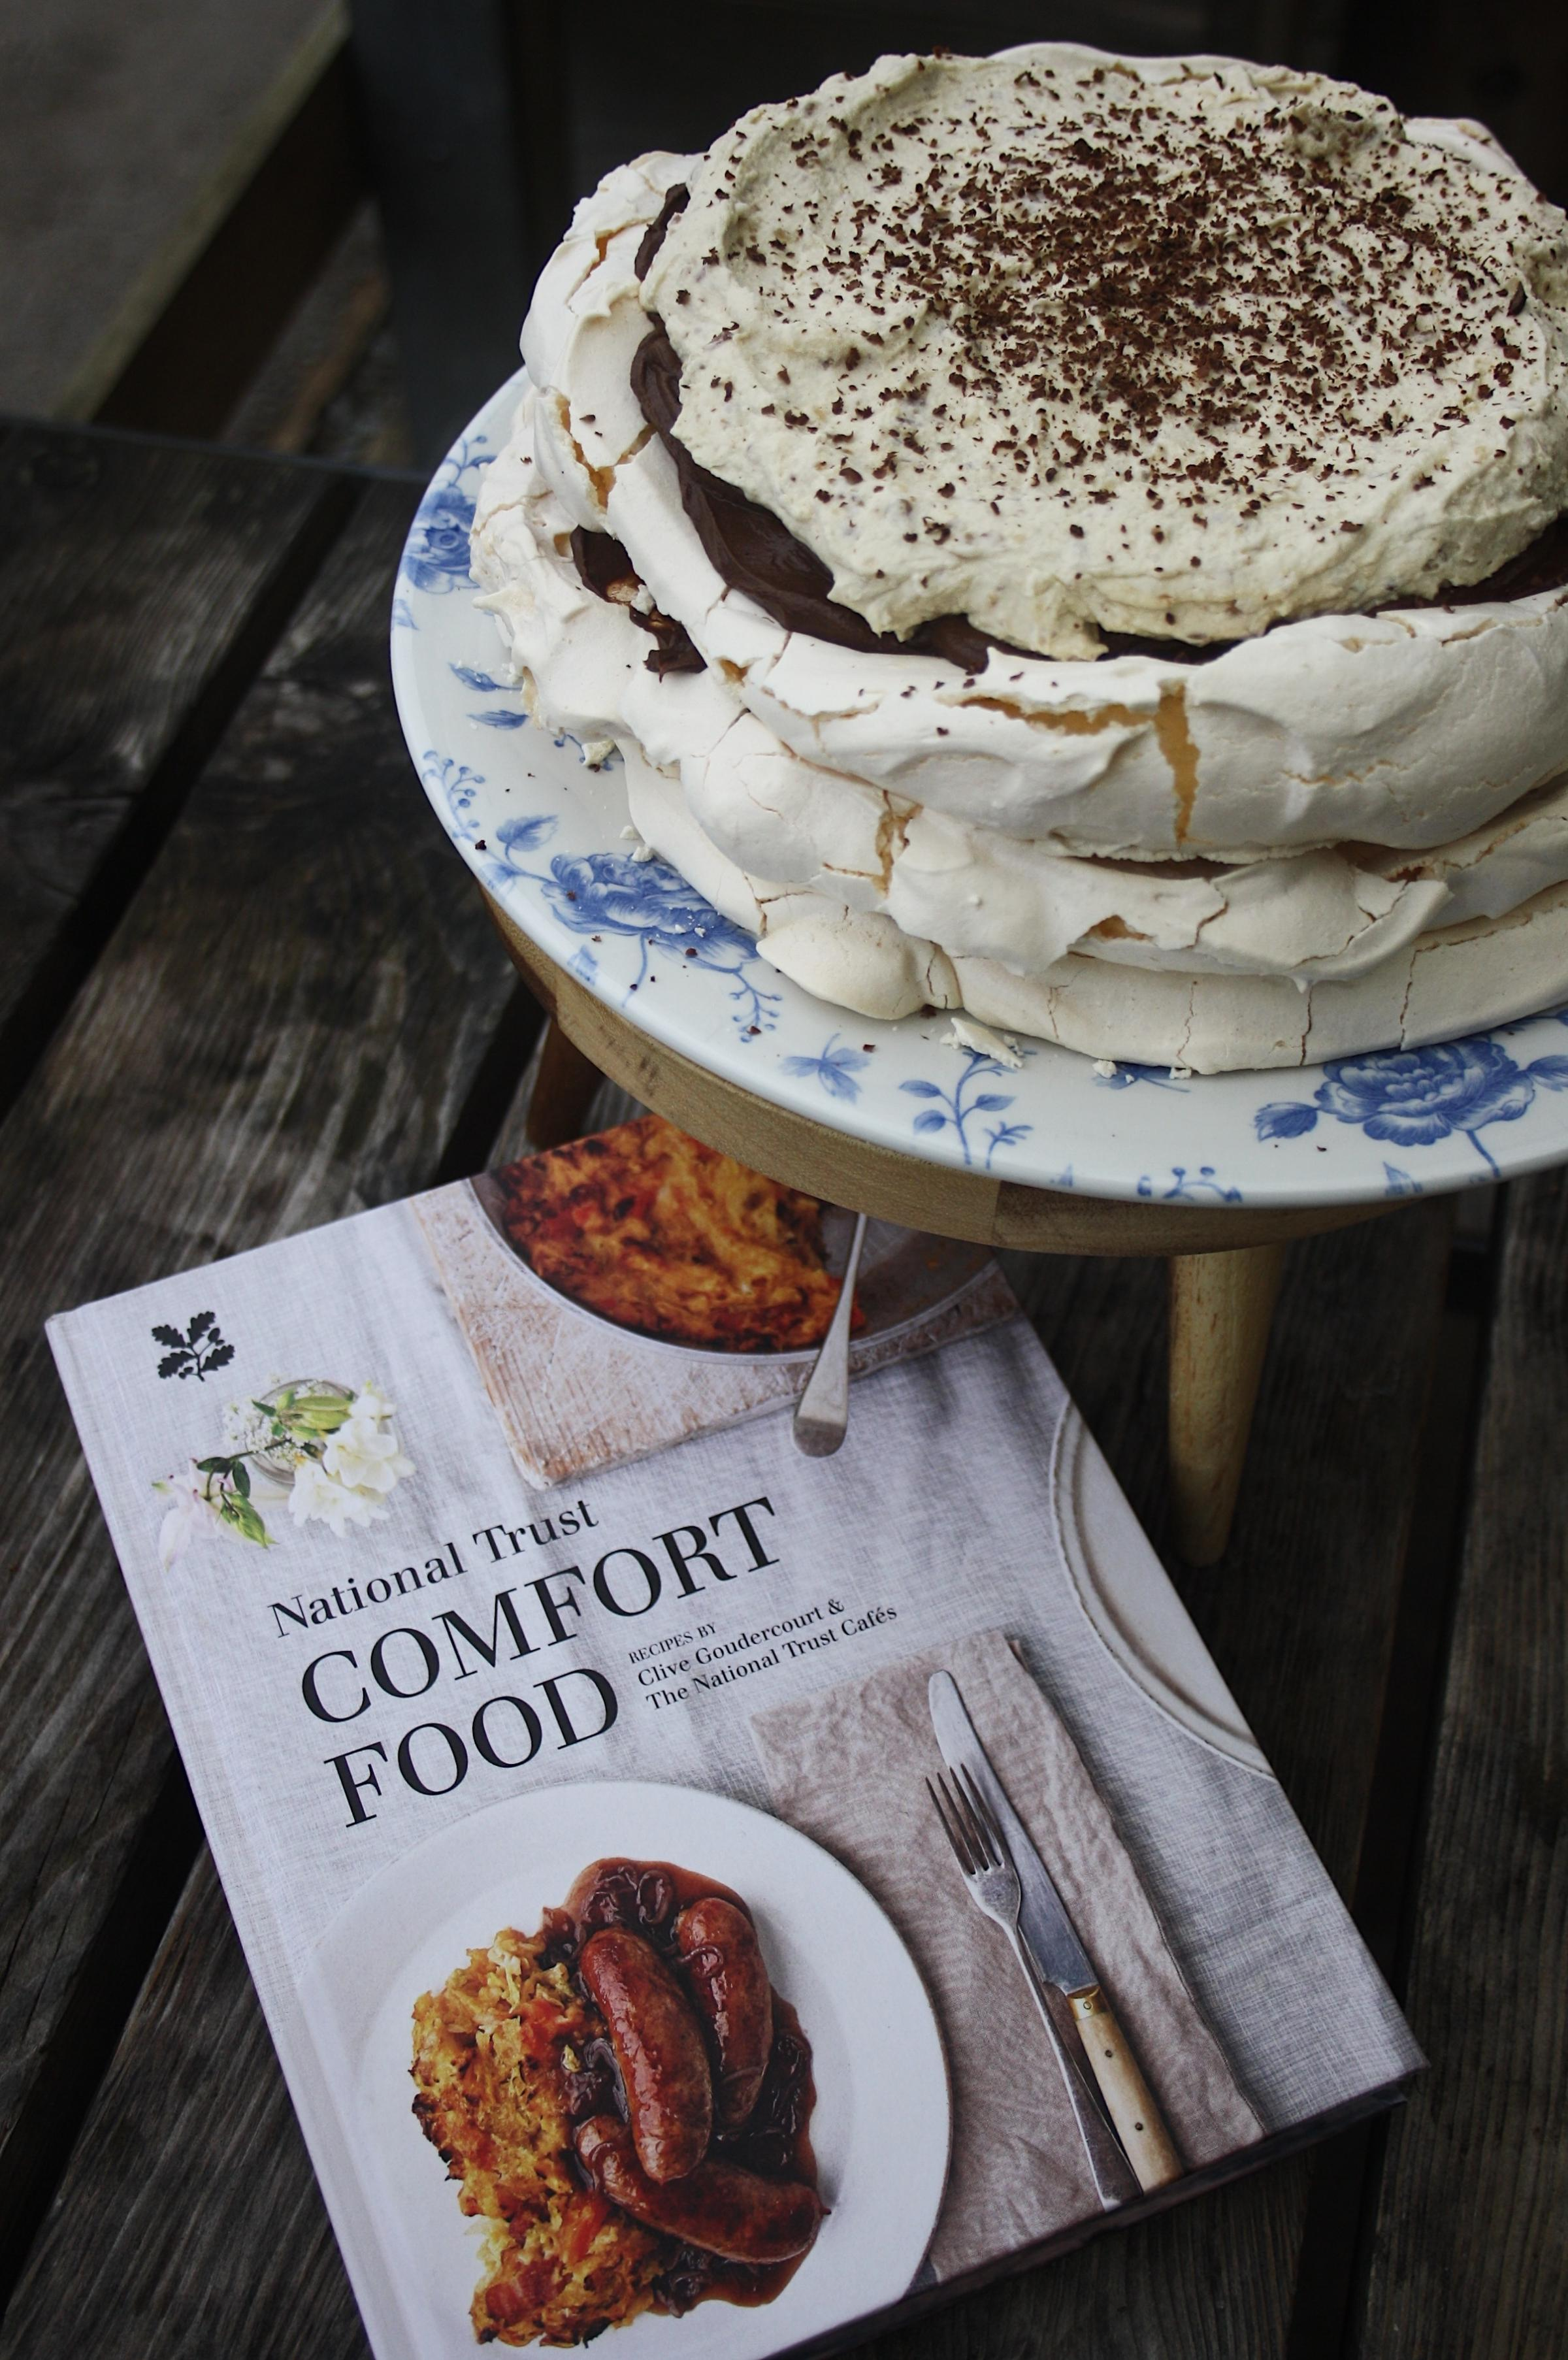 Versailles-inspired pavlova baked at Sizergh Castle cafe features in new National Trust cookbook